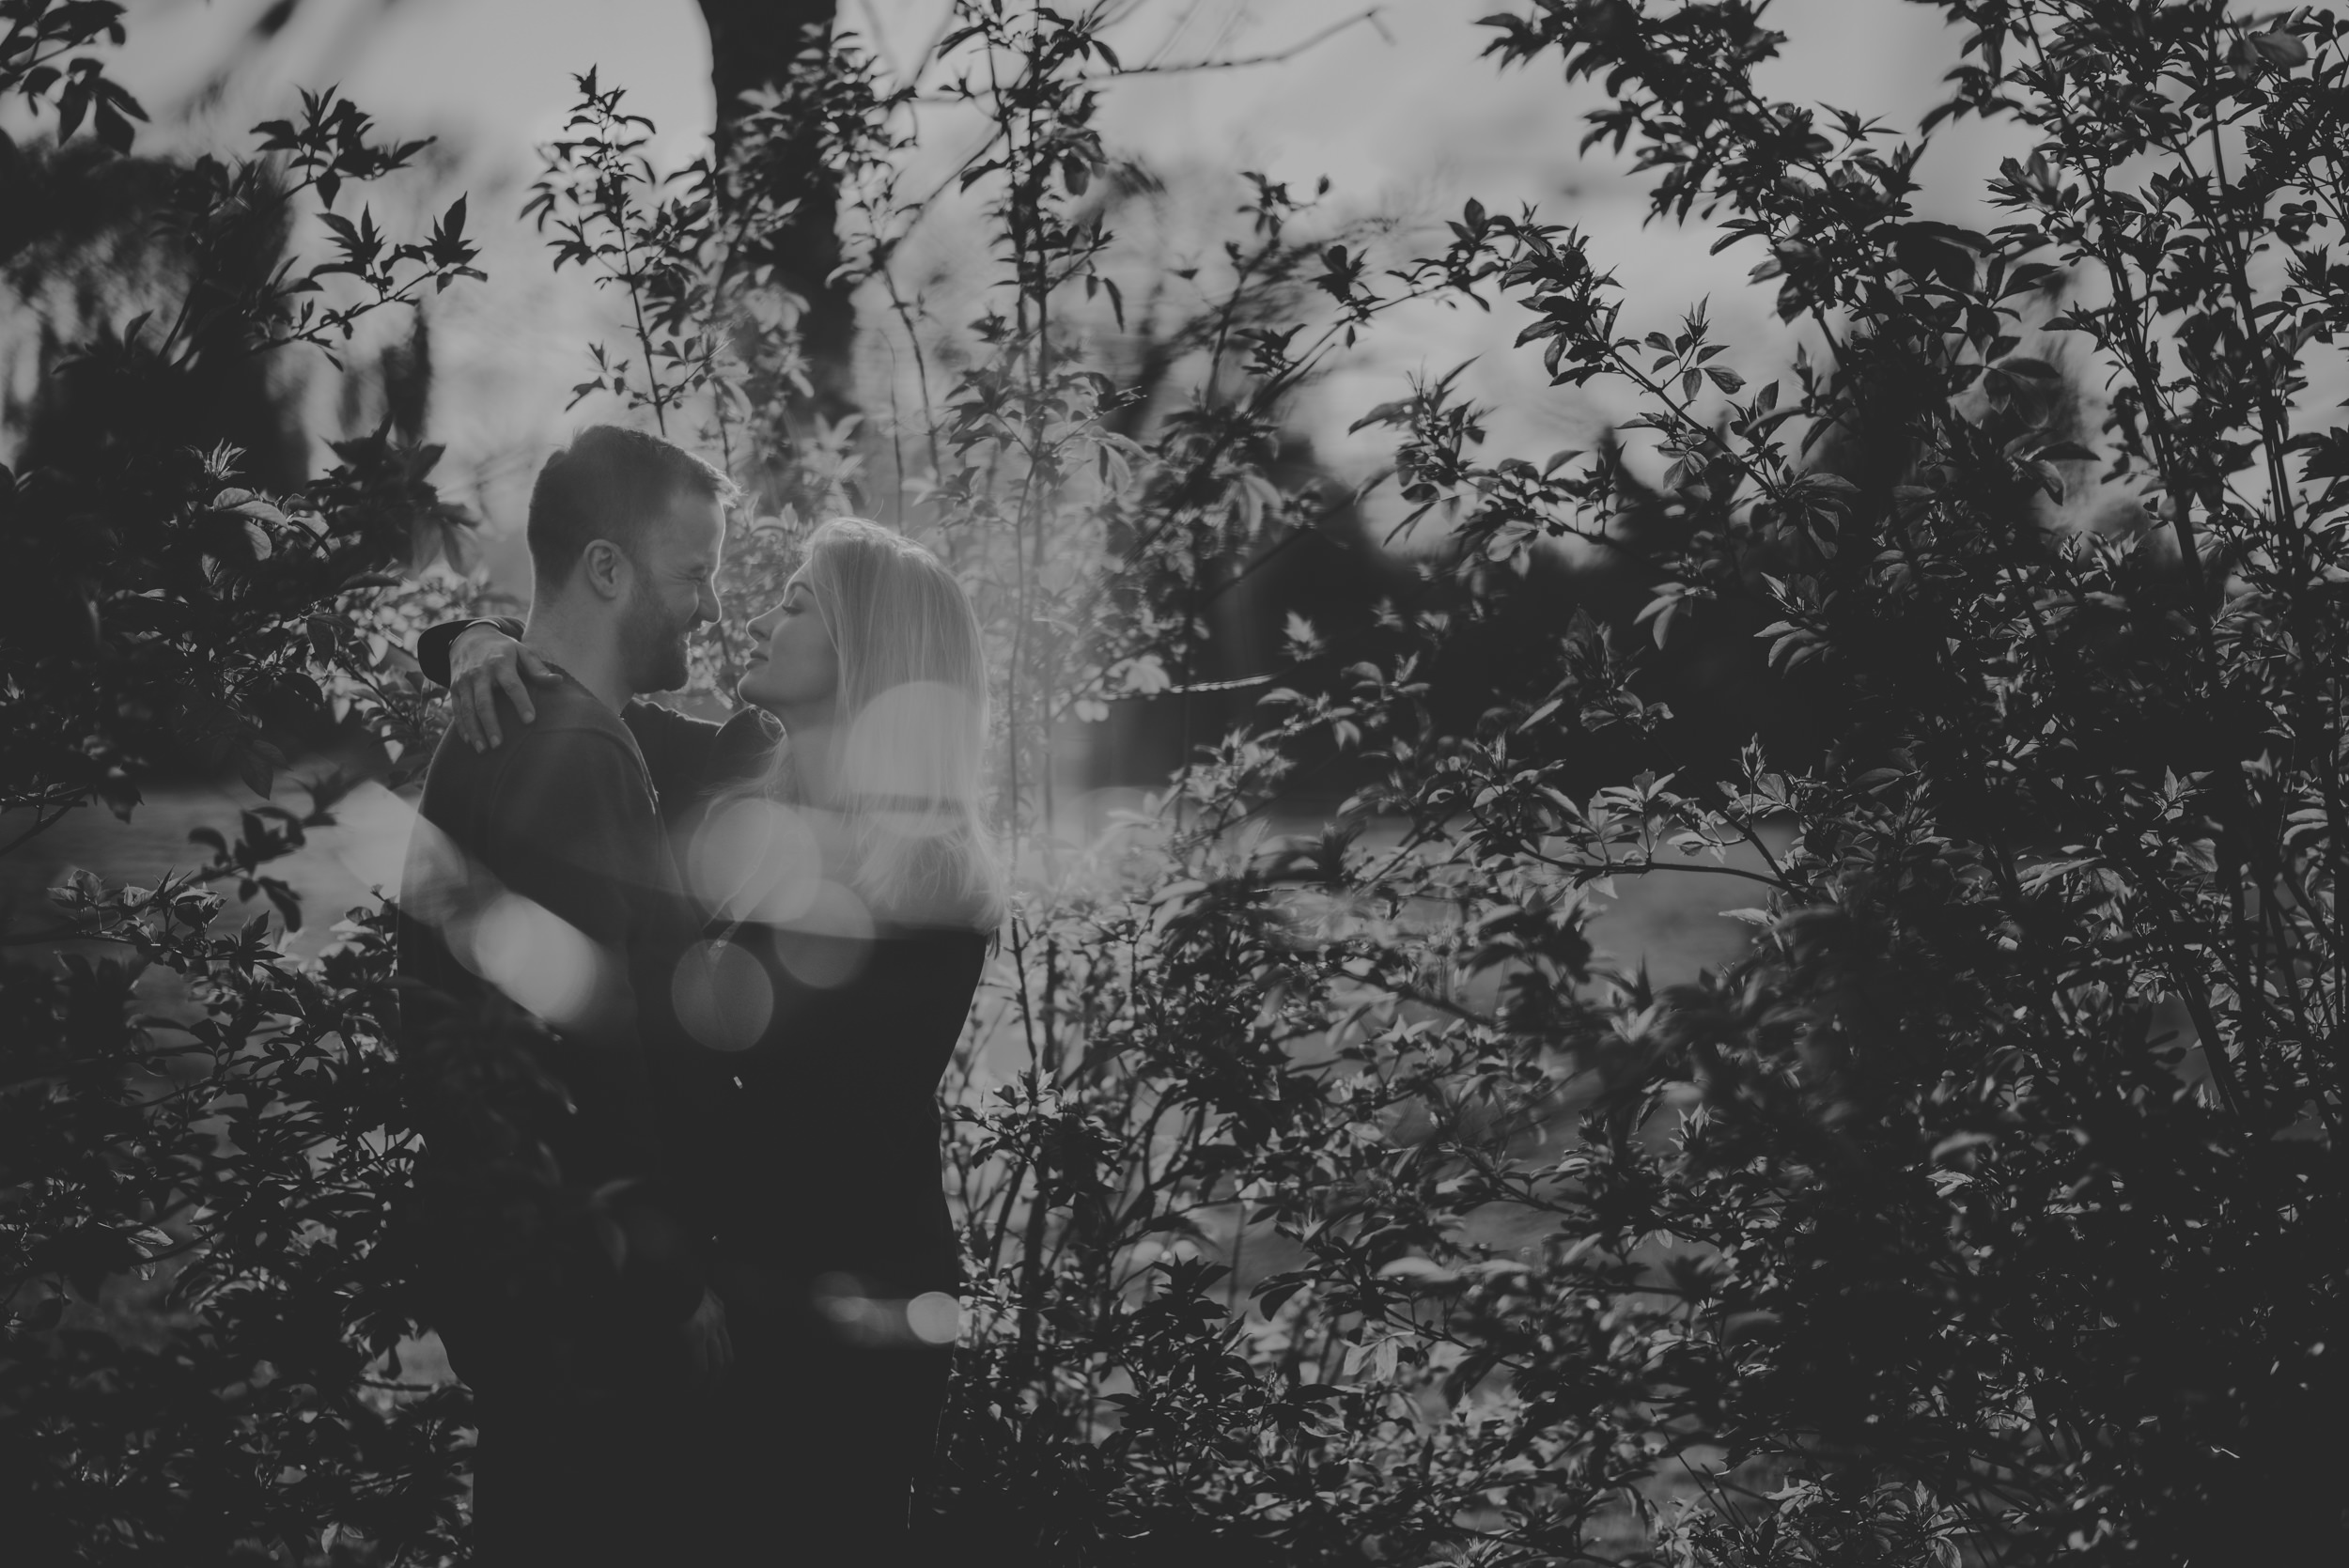 Hannah-and-James-Engagement-Session-Henley-on-Thames-Oxfordshire-Manu-Mendoza-Wedding-Photography-011.jpg